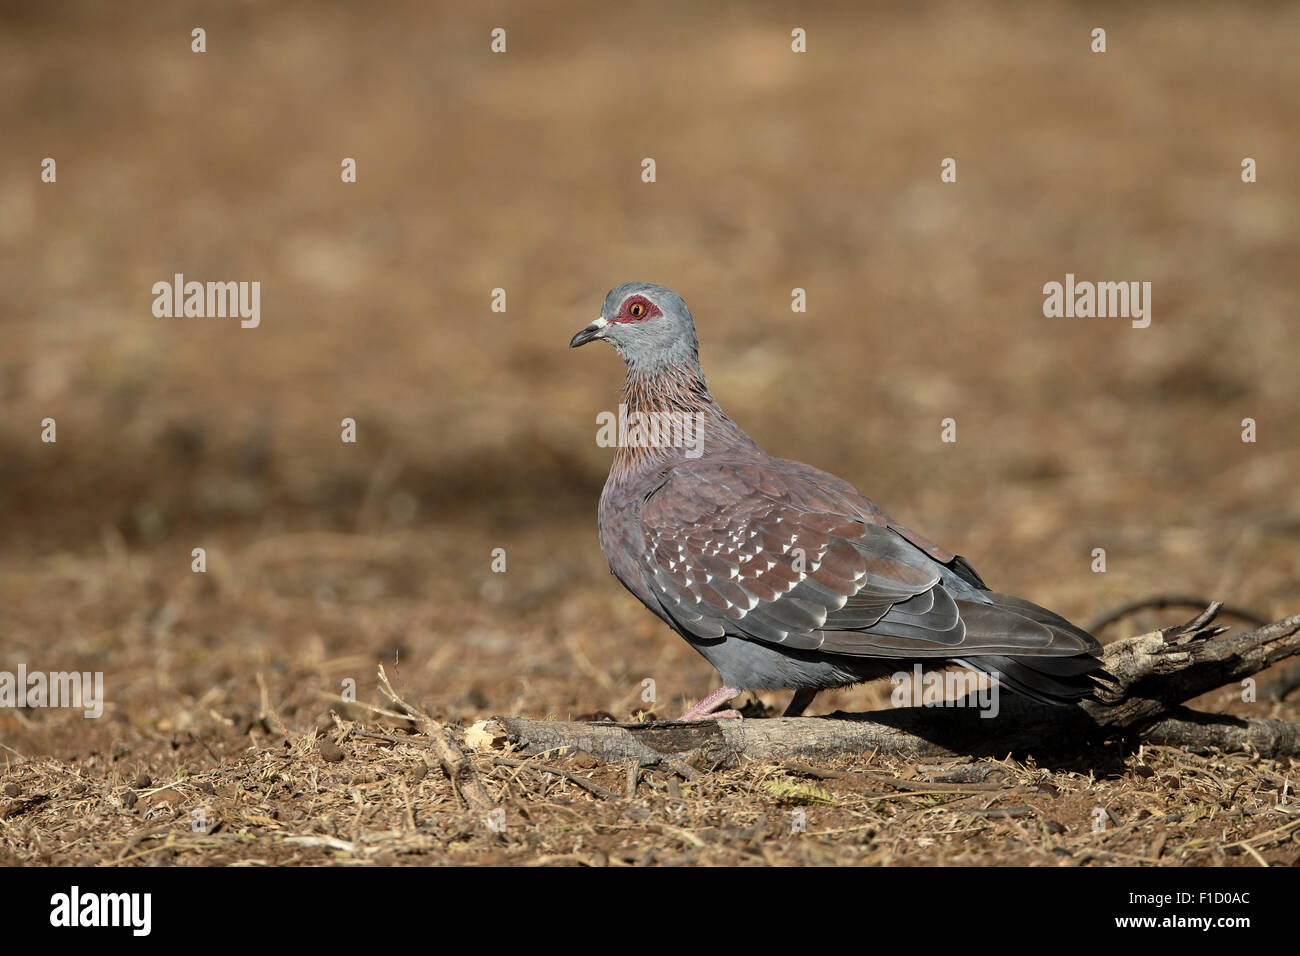 Spectacled pigeon, Columba guinea, single bird on ground, South Africa, August 2015 - Stock Image